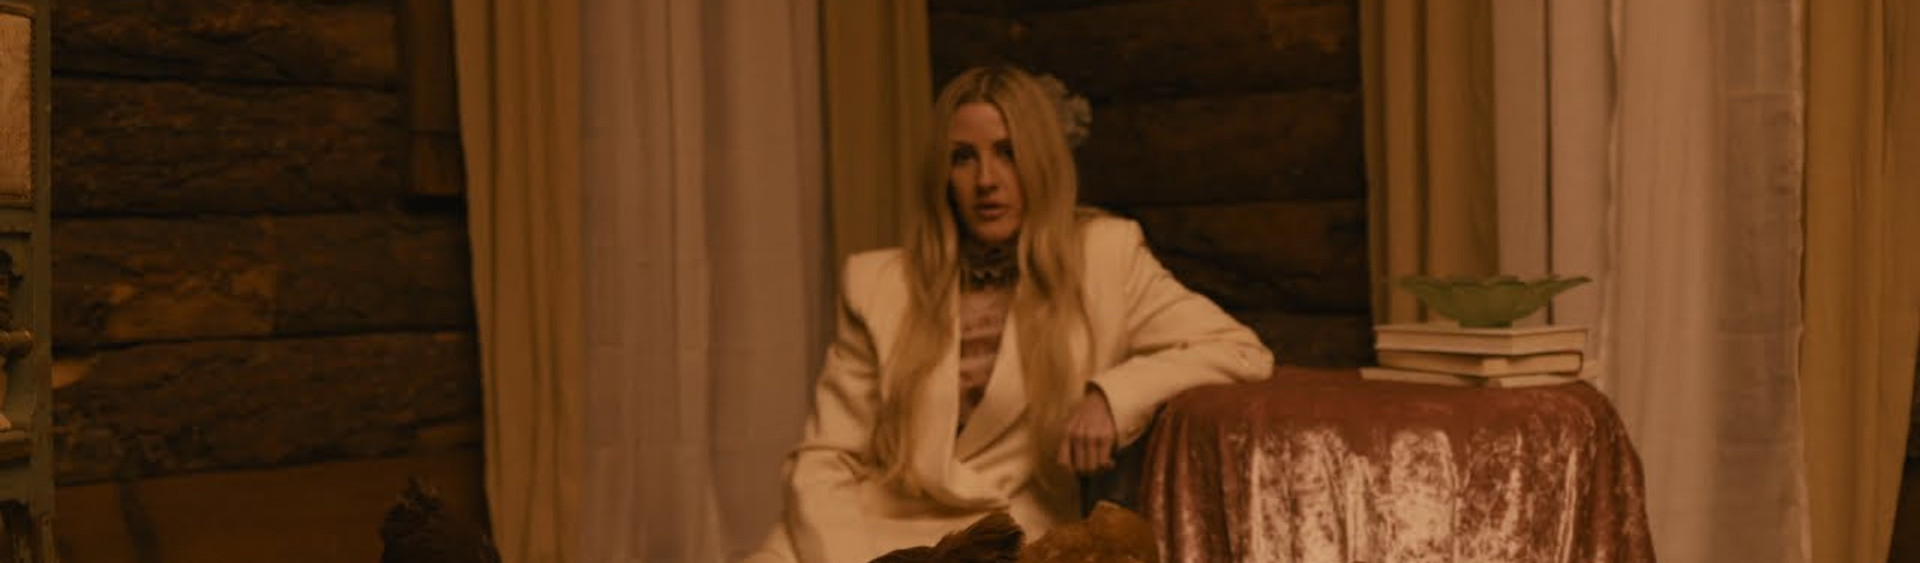 WORRY ABOUT ME - Ellie Goulding & Blackbear